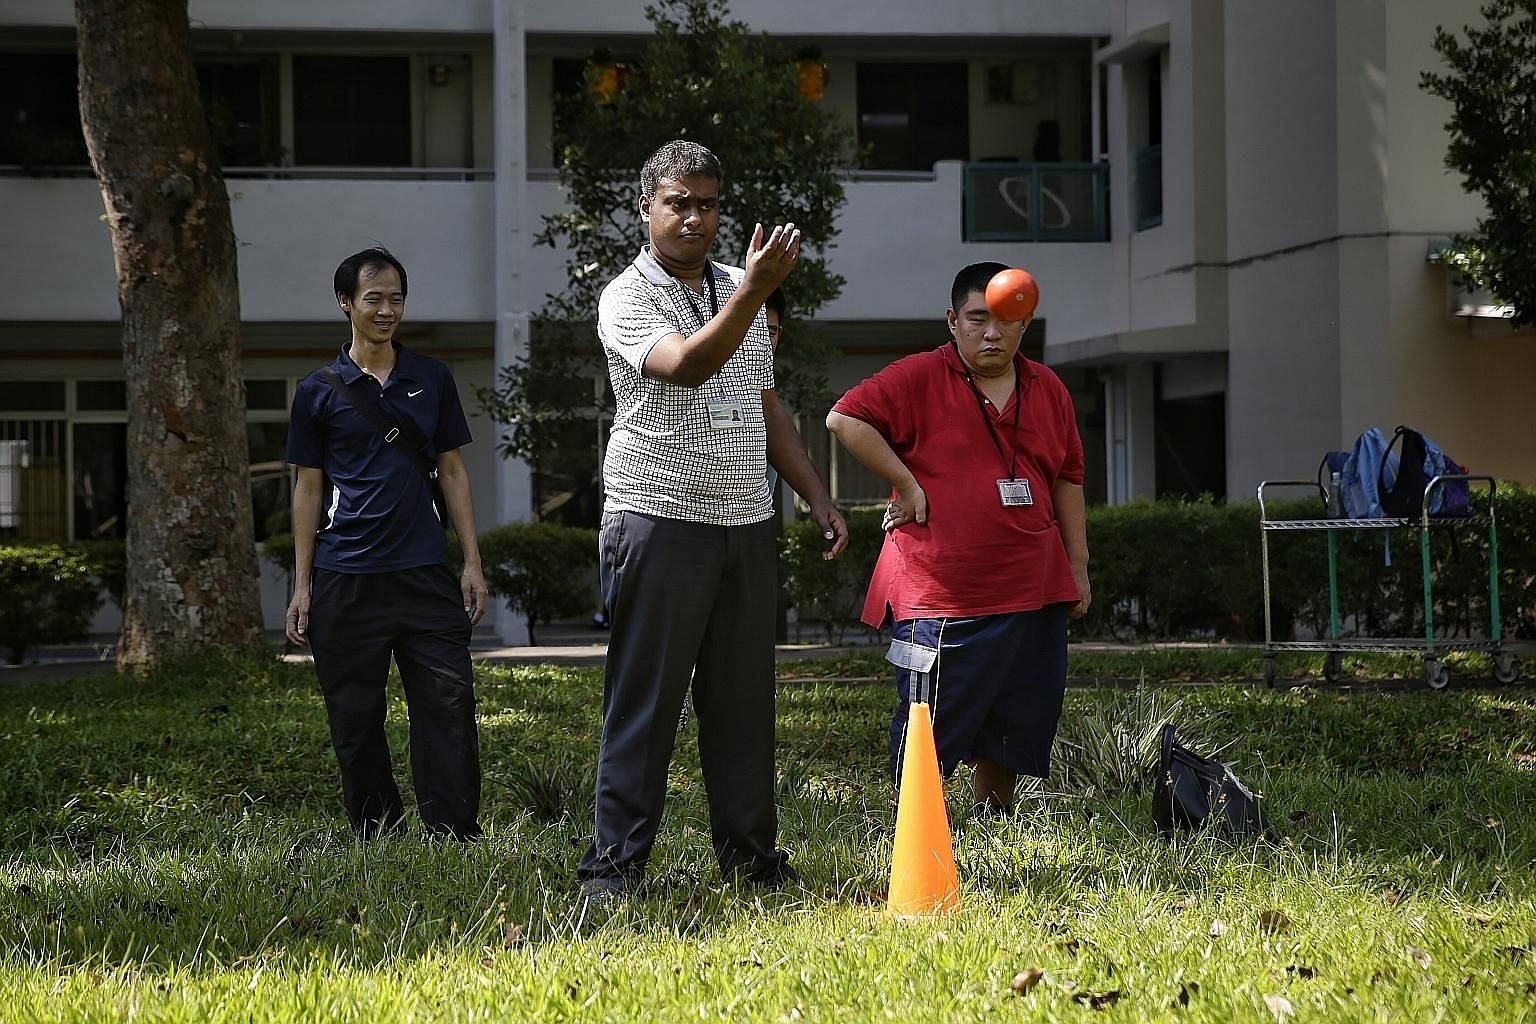 Mr Md Arif Mohd Hassan, 28, who has moderate intellectual disability, playing bocce at a park near the Movement for the Intellectually Disabled of Singapore's (Minds) Clementi Training and Development Centre. Groups like Minds are labelled as volunta